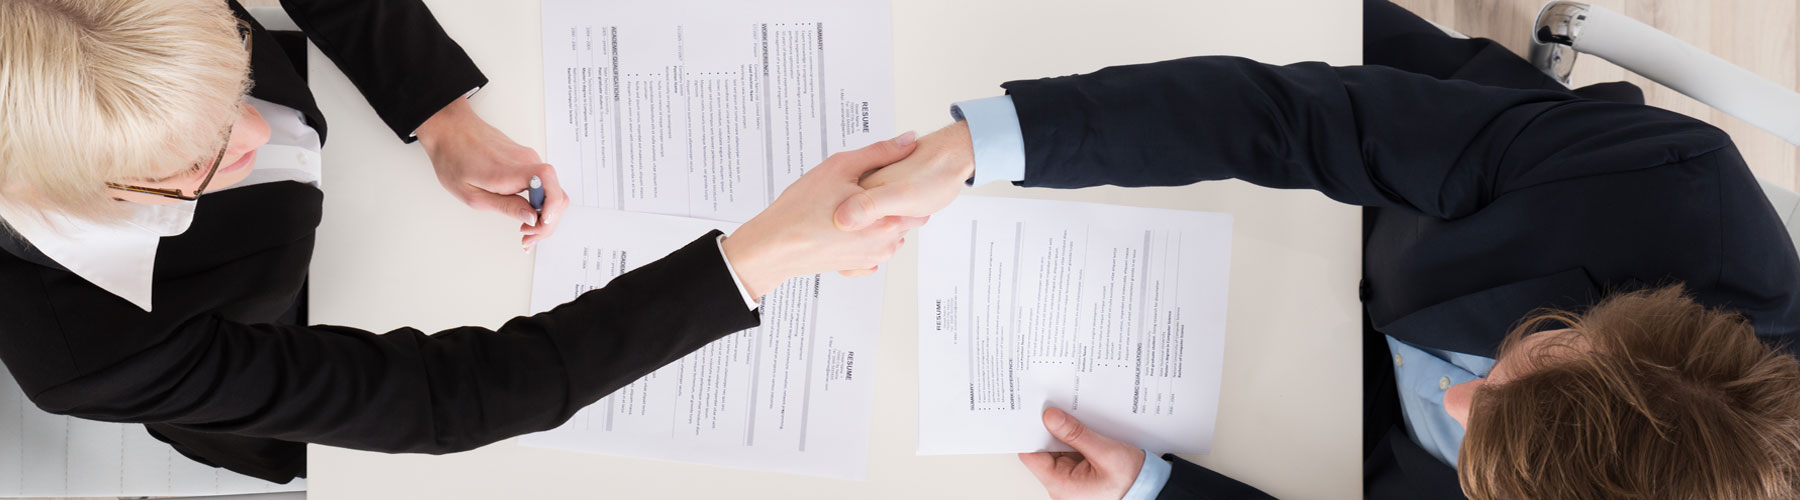 Employment Law Changes Coming in April 2017